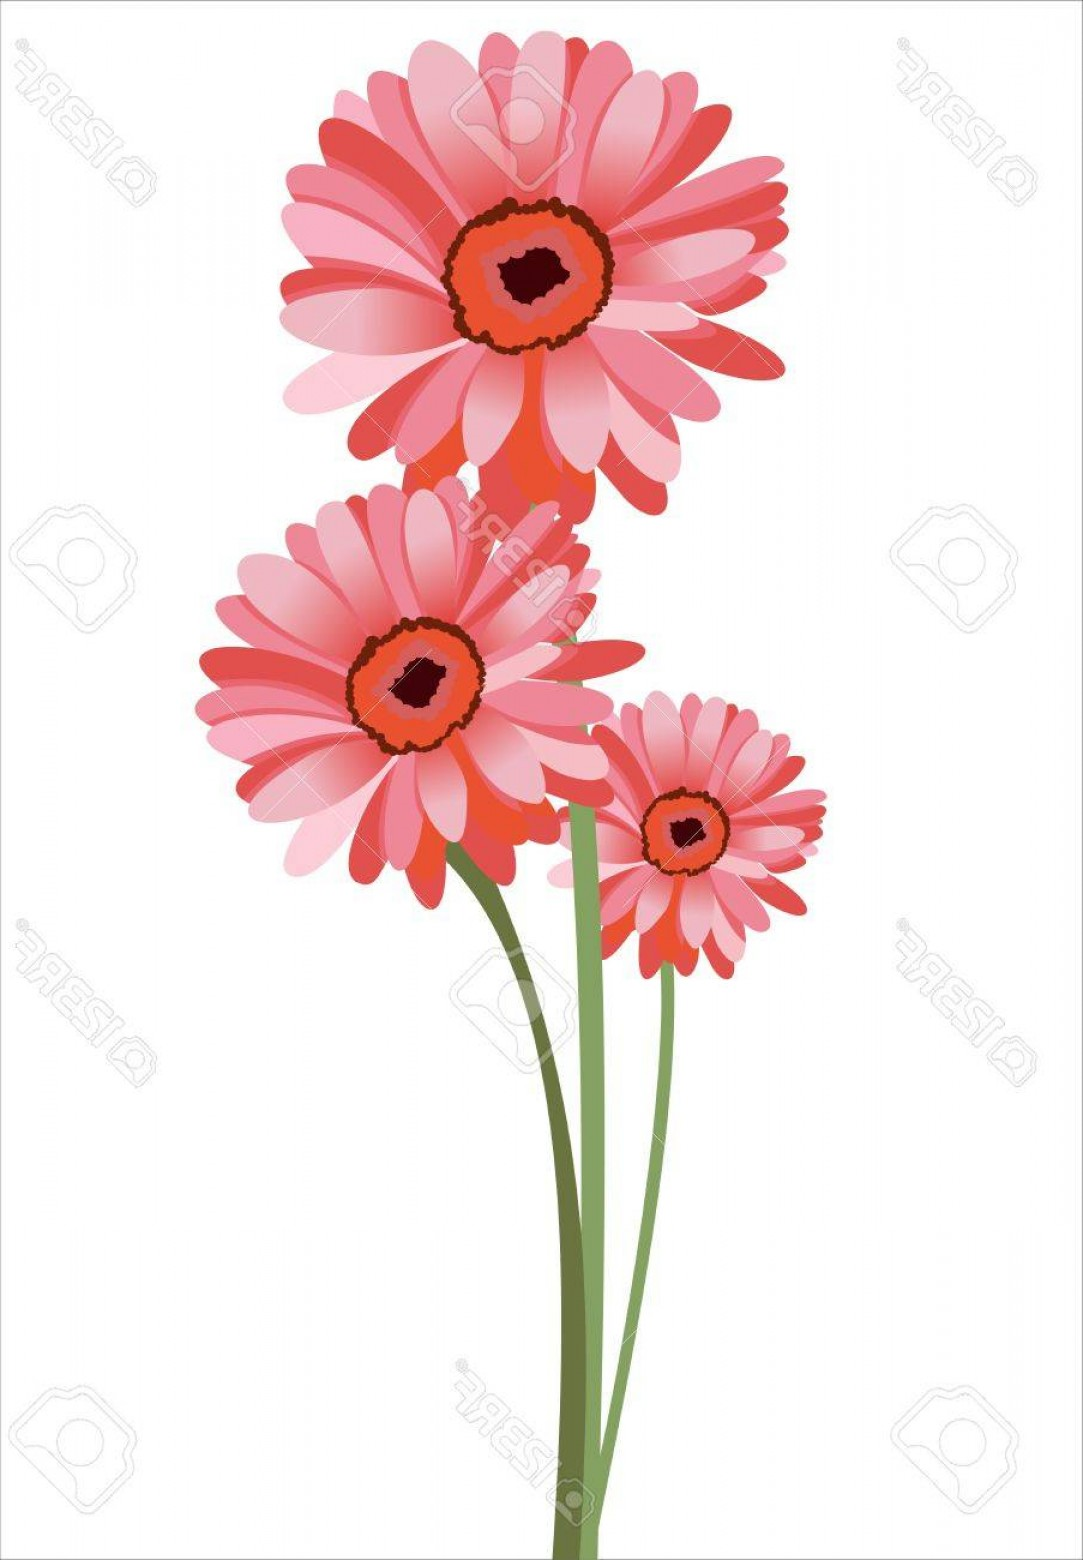 Orange Gerber Daisy Vector: Pretty Photopink Gerbera Flower Isolated On White